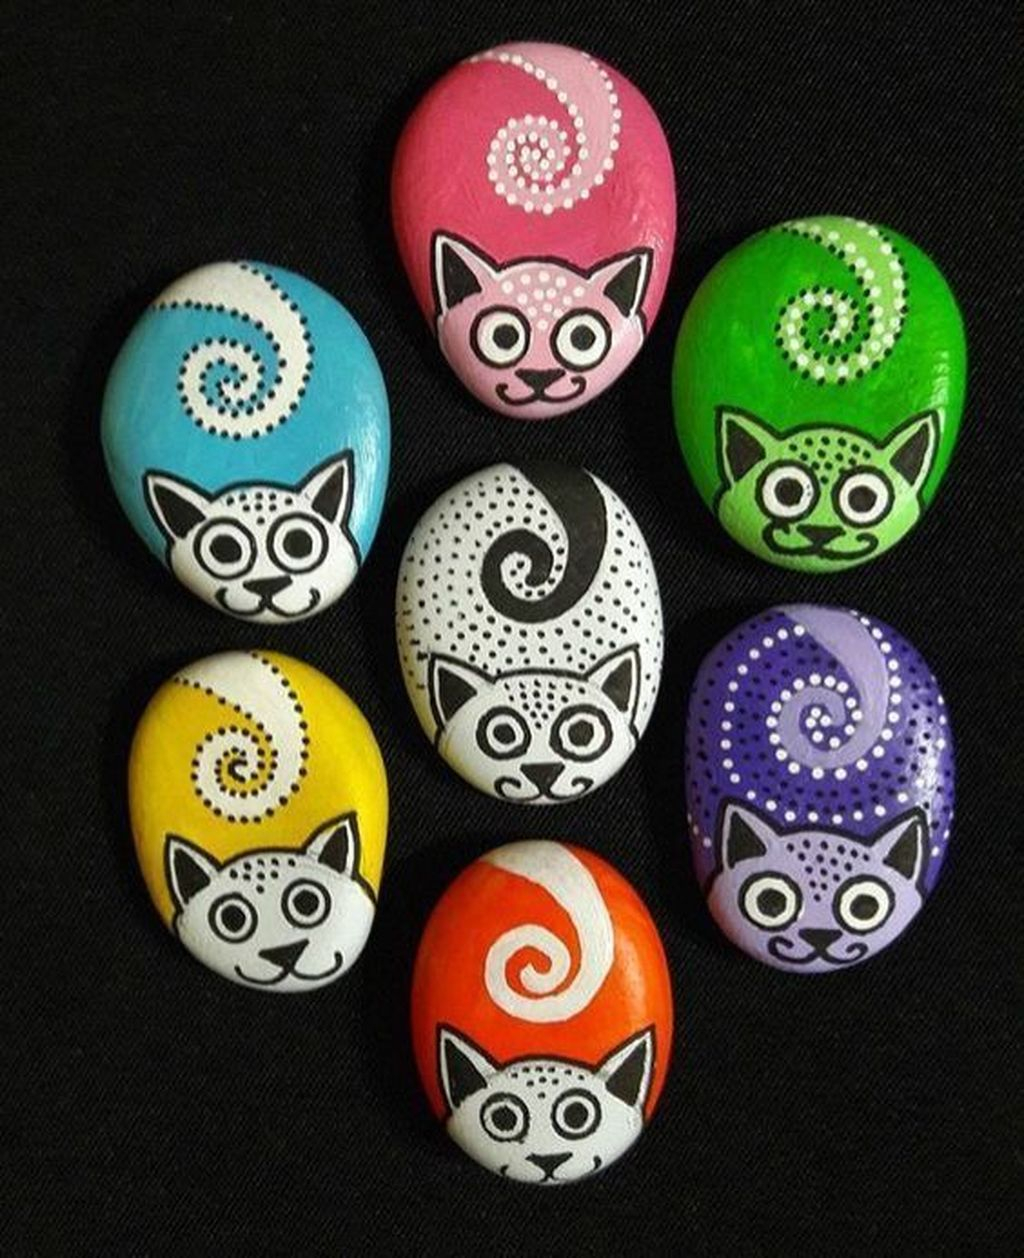 Affordable Diy Painted Rock Ideas For Home Decoration 16